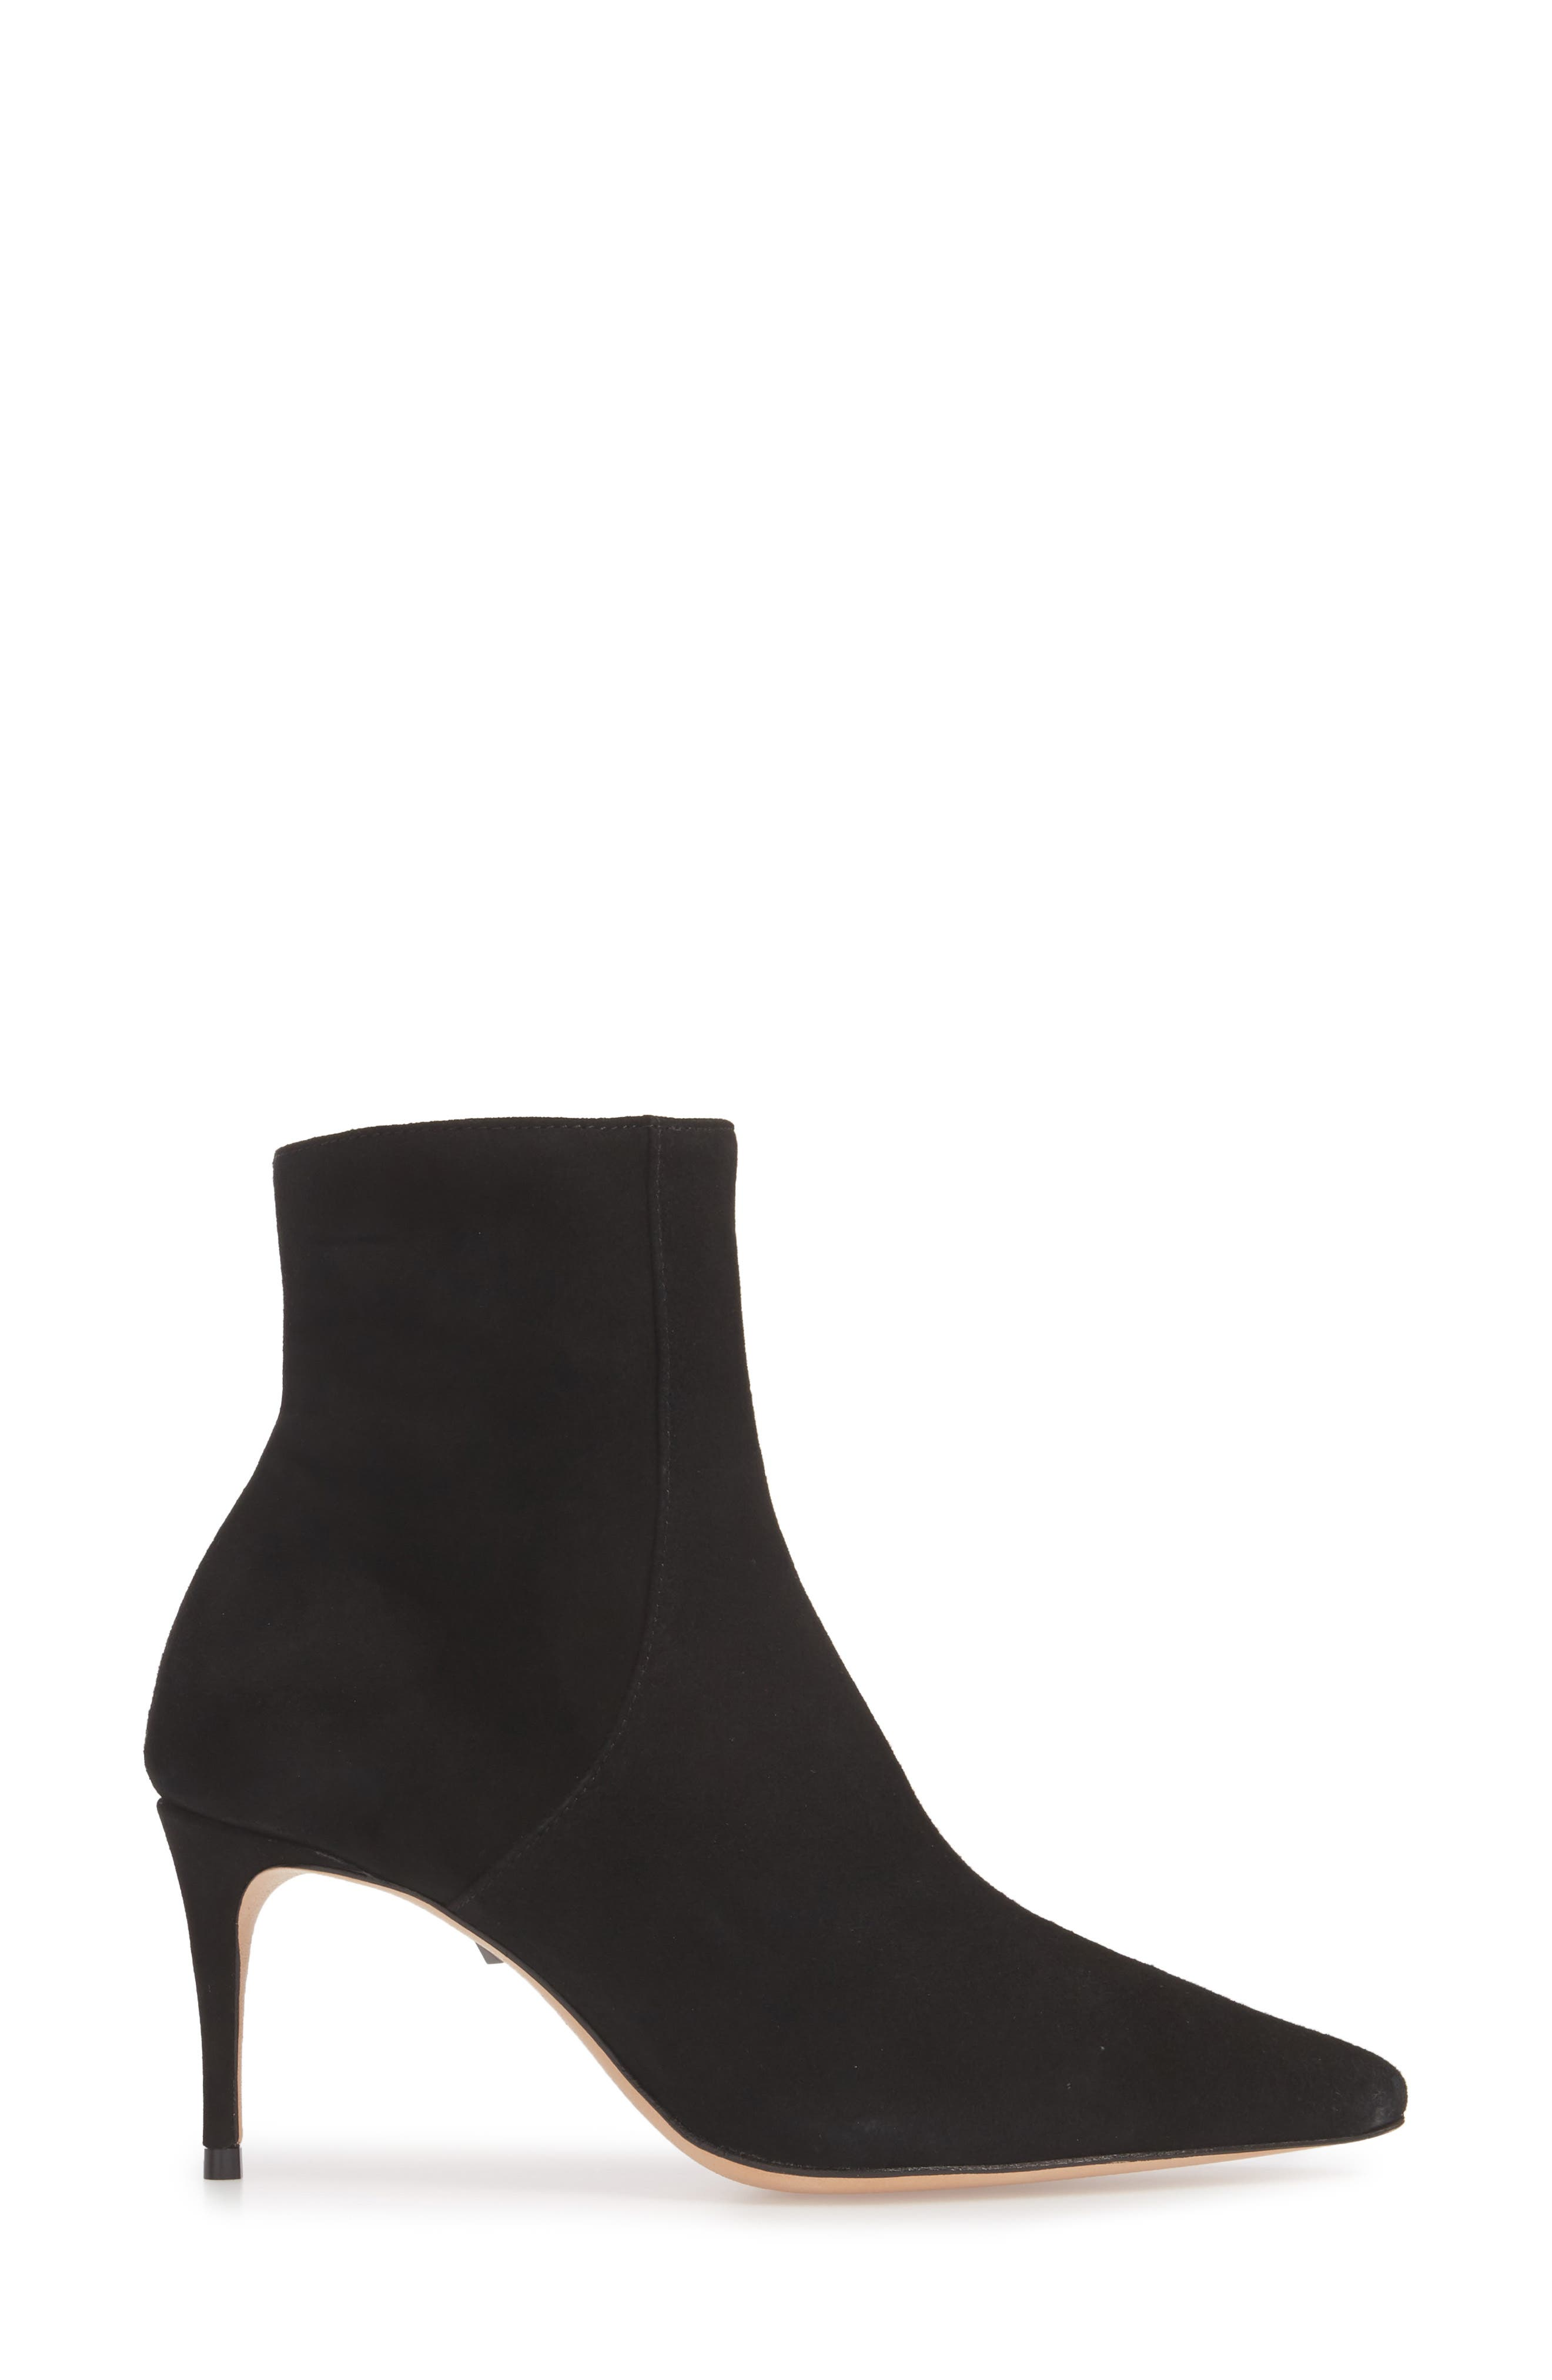 Bette Bootie,                             Alternate thumbnail 3, color,                             BLACK SUEDE